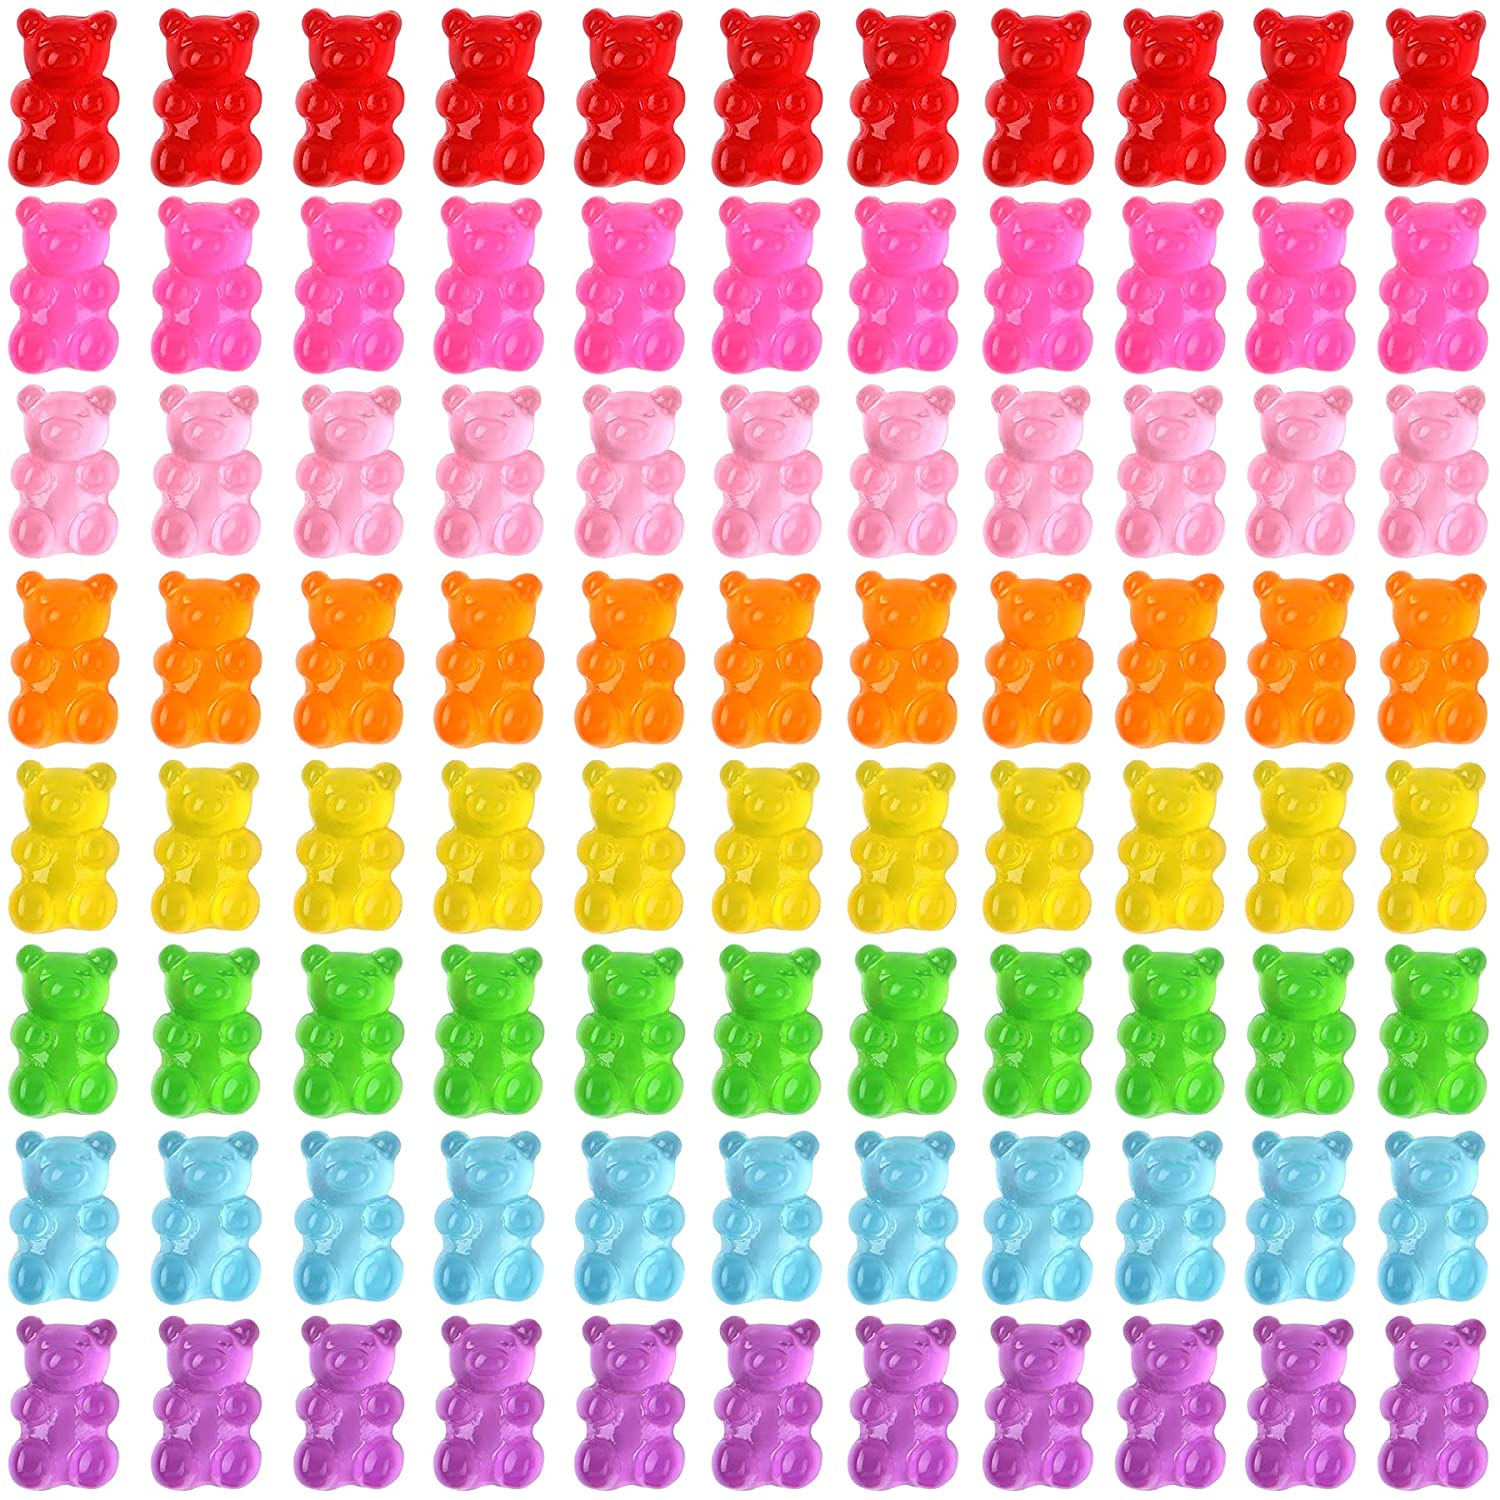 SANNIX 120 Pcs Candy Gummy Bear Charms Colorful Resin Fillers Charms Gummy Bears for Nail Art DIY Crafting Epoxy Resin Supplies Slime Jewelry Making Decoration